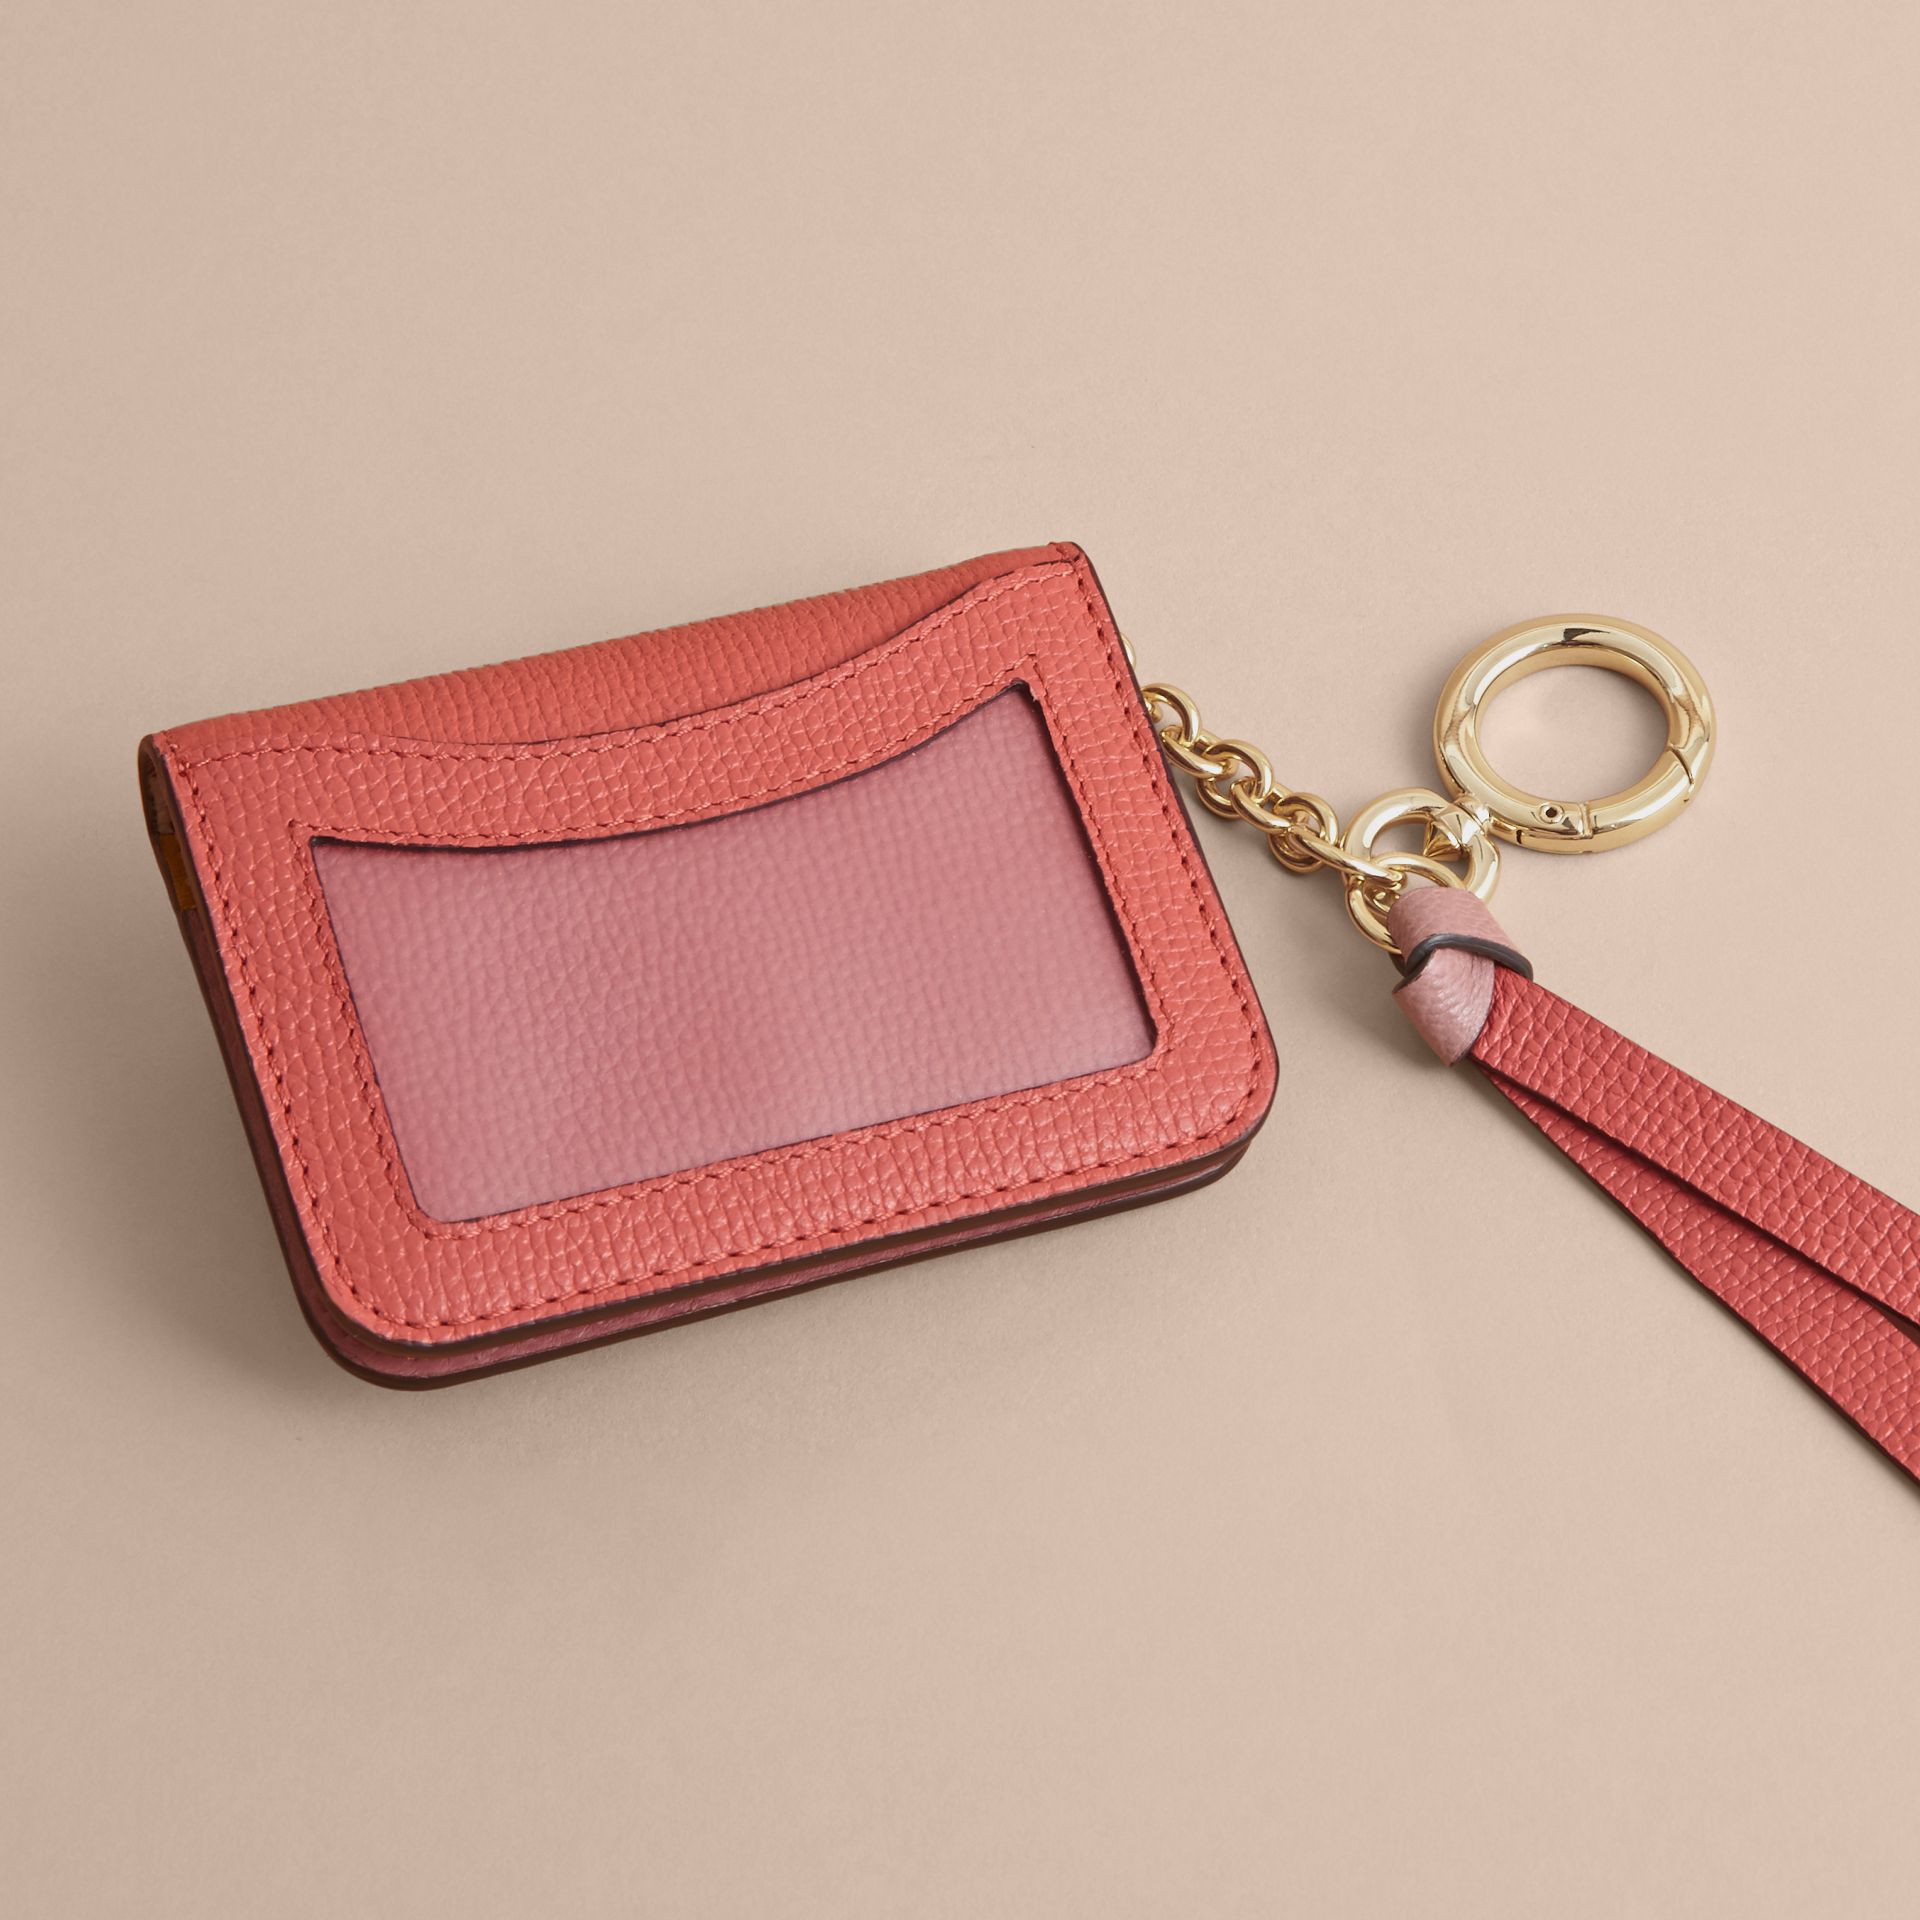 Leather and Haymarket Check ID Card Case Charm in Cinnamon Red/multi - Women | Burberry - gallery image 3